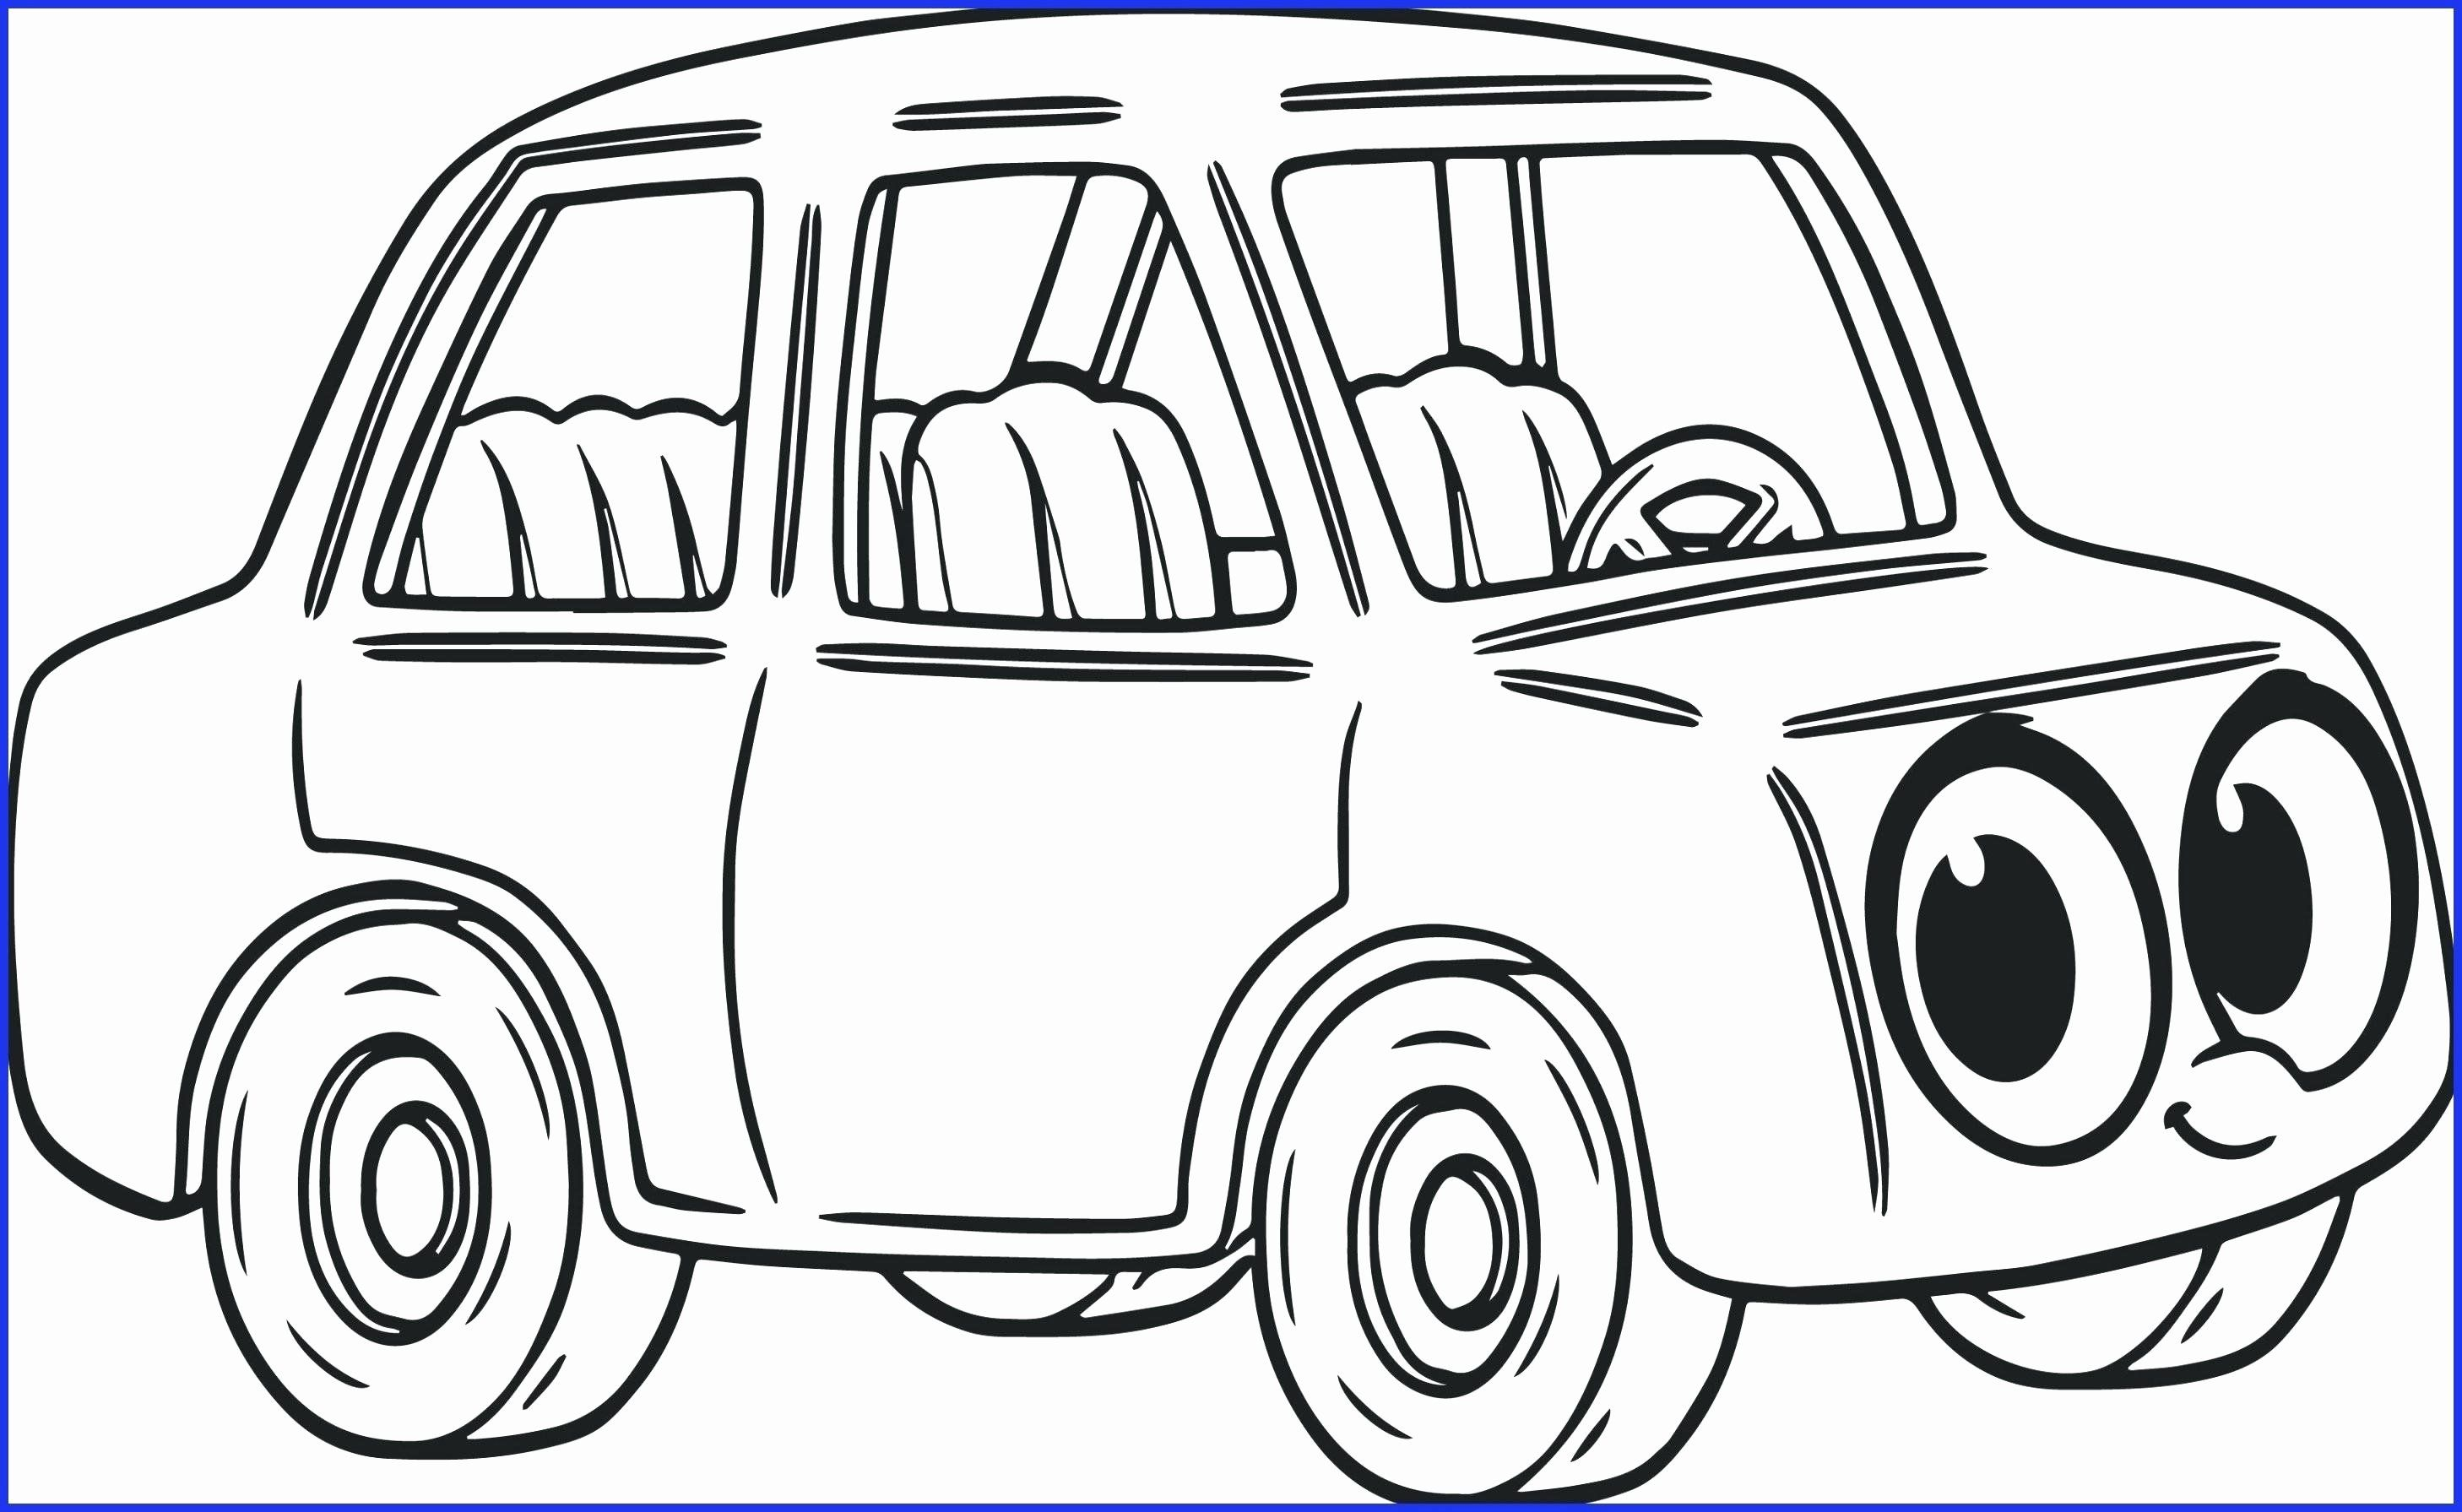 Coloring Cartoon Cars Lovely Hot Wheels Cars Coloring Pages Album Sabadaphnecottage Cars Coloring Pages Truck Coloring Pages Cartoon Coloring Pages